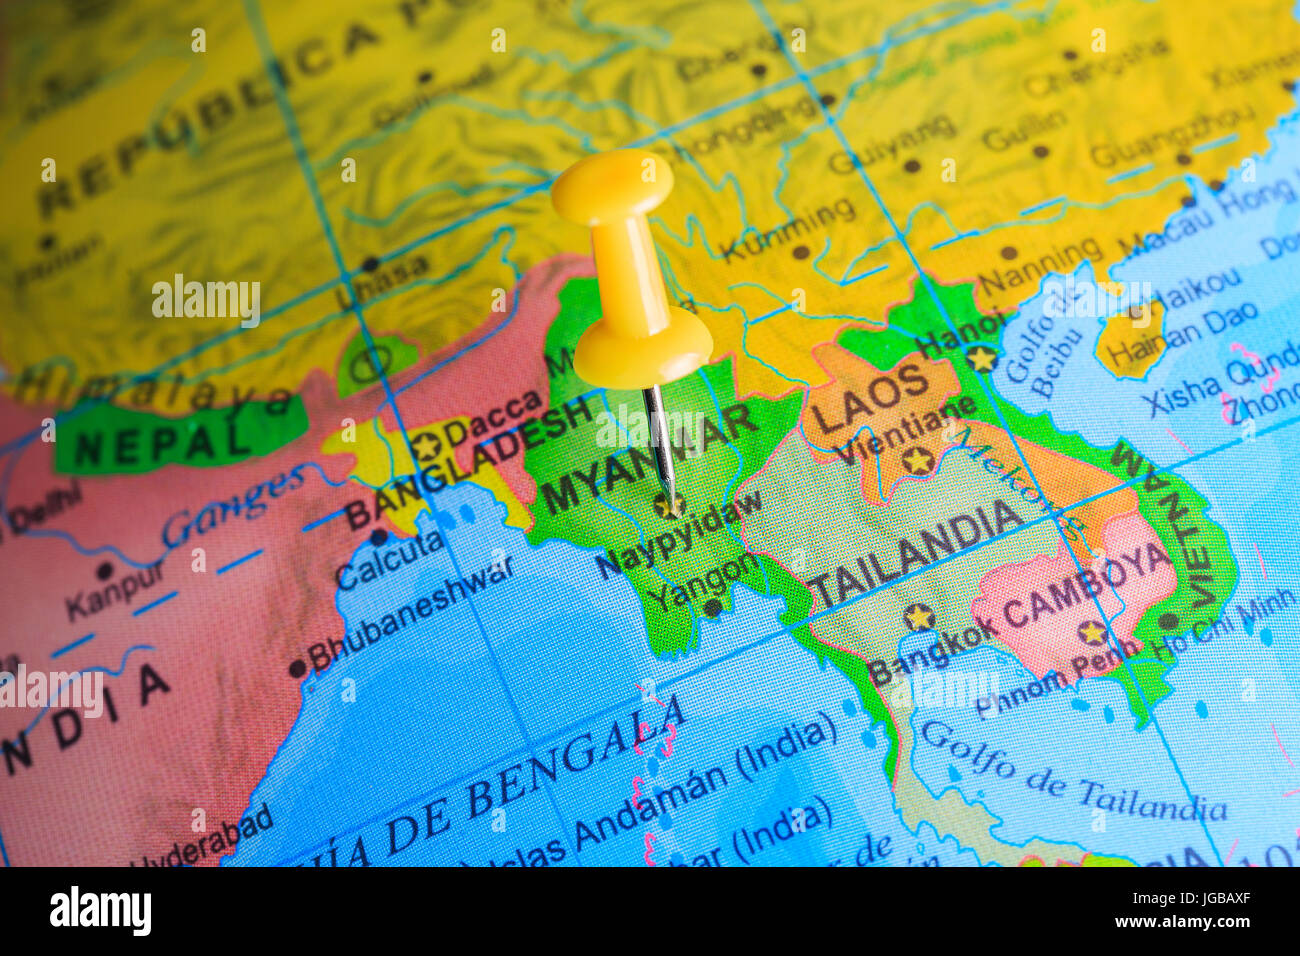 Myanmar pinned on a map of Asia - Stock Image